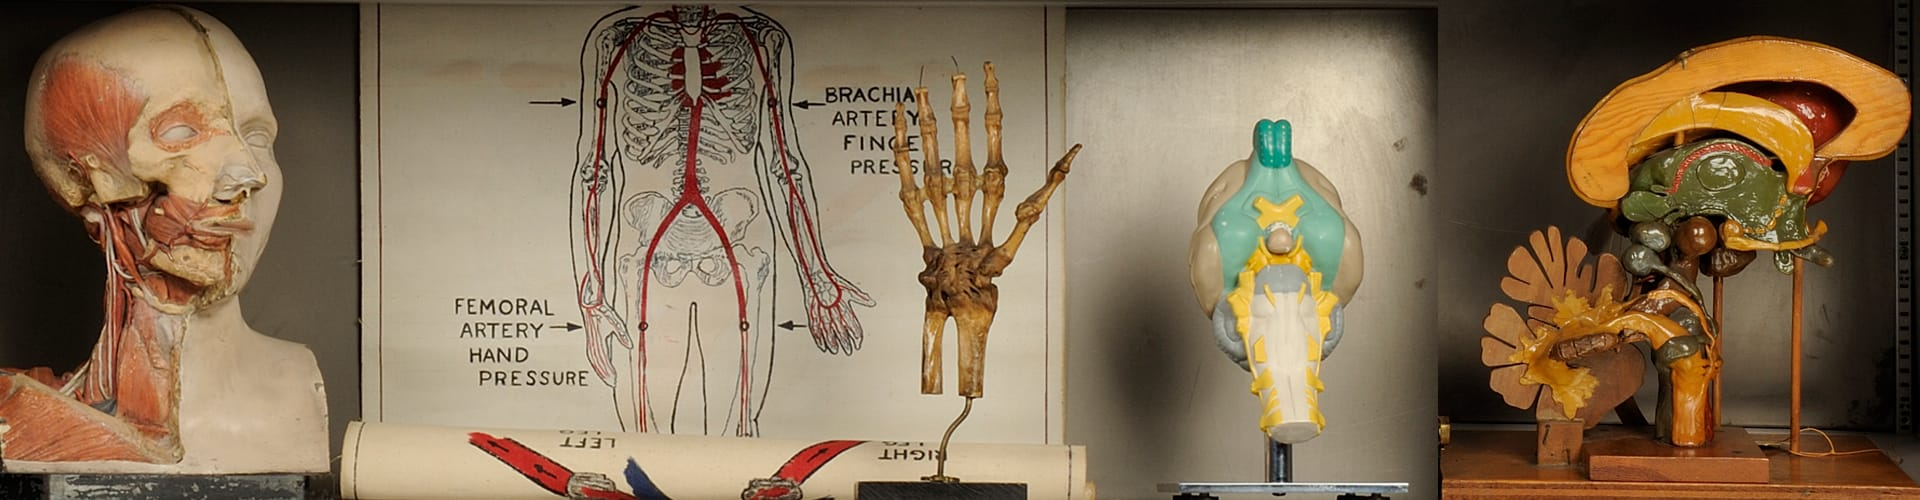 Cabinet with medical objects like hands and body diagrams